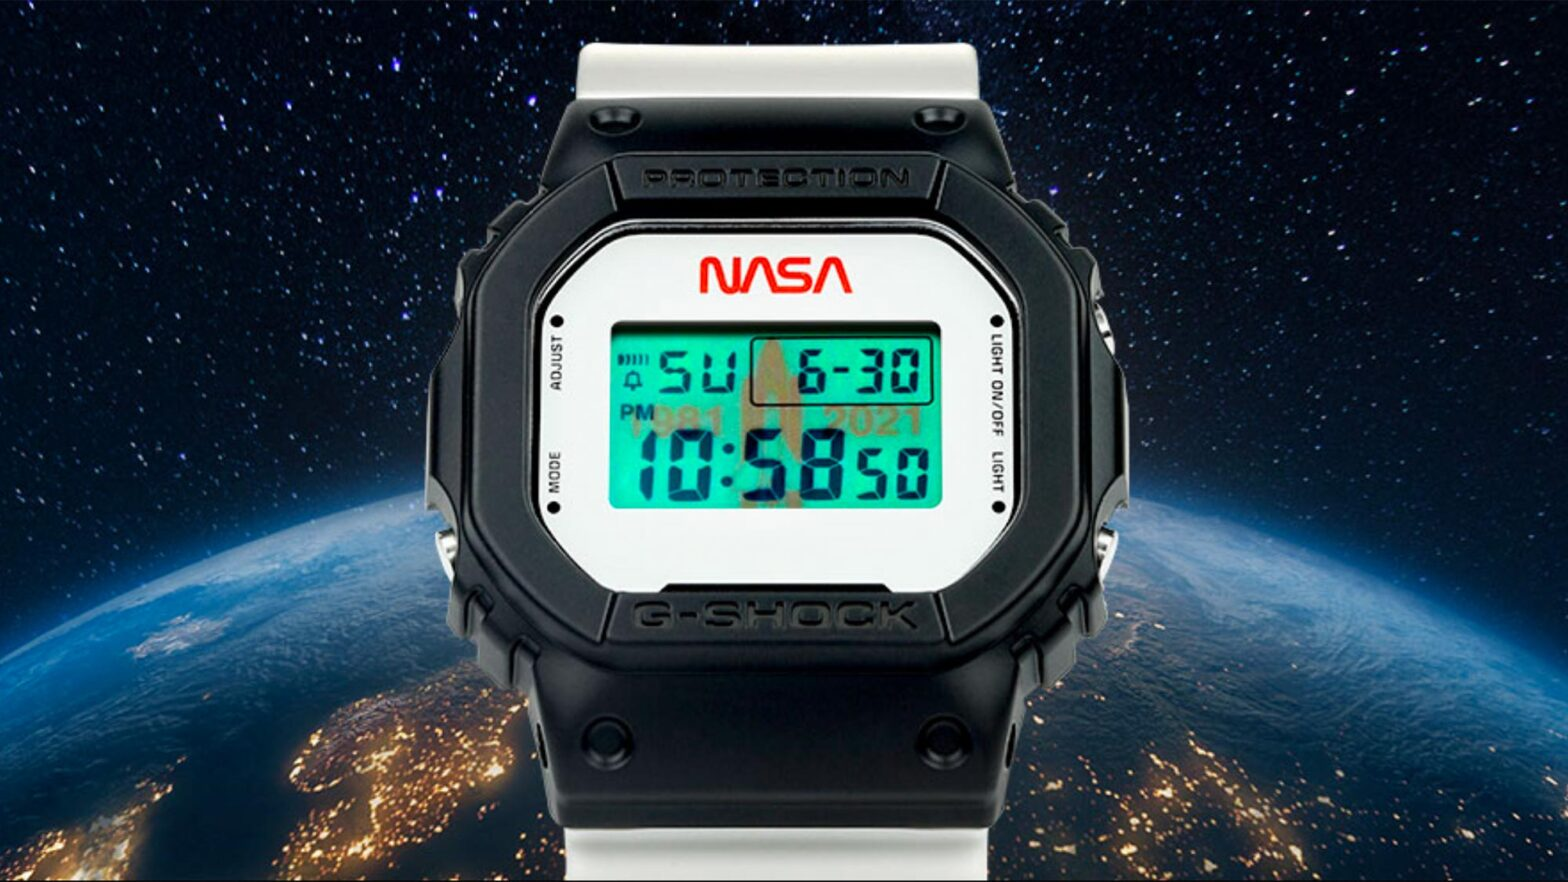 G-Shock x NASA DW5600NASA21 Wrist Watch